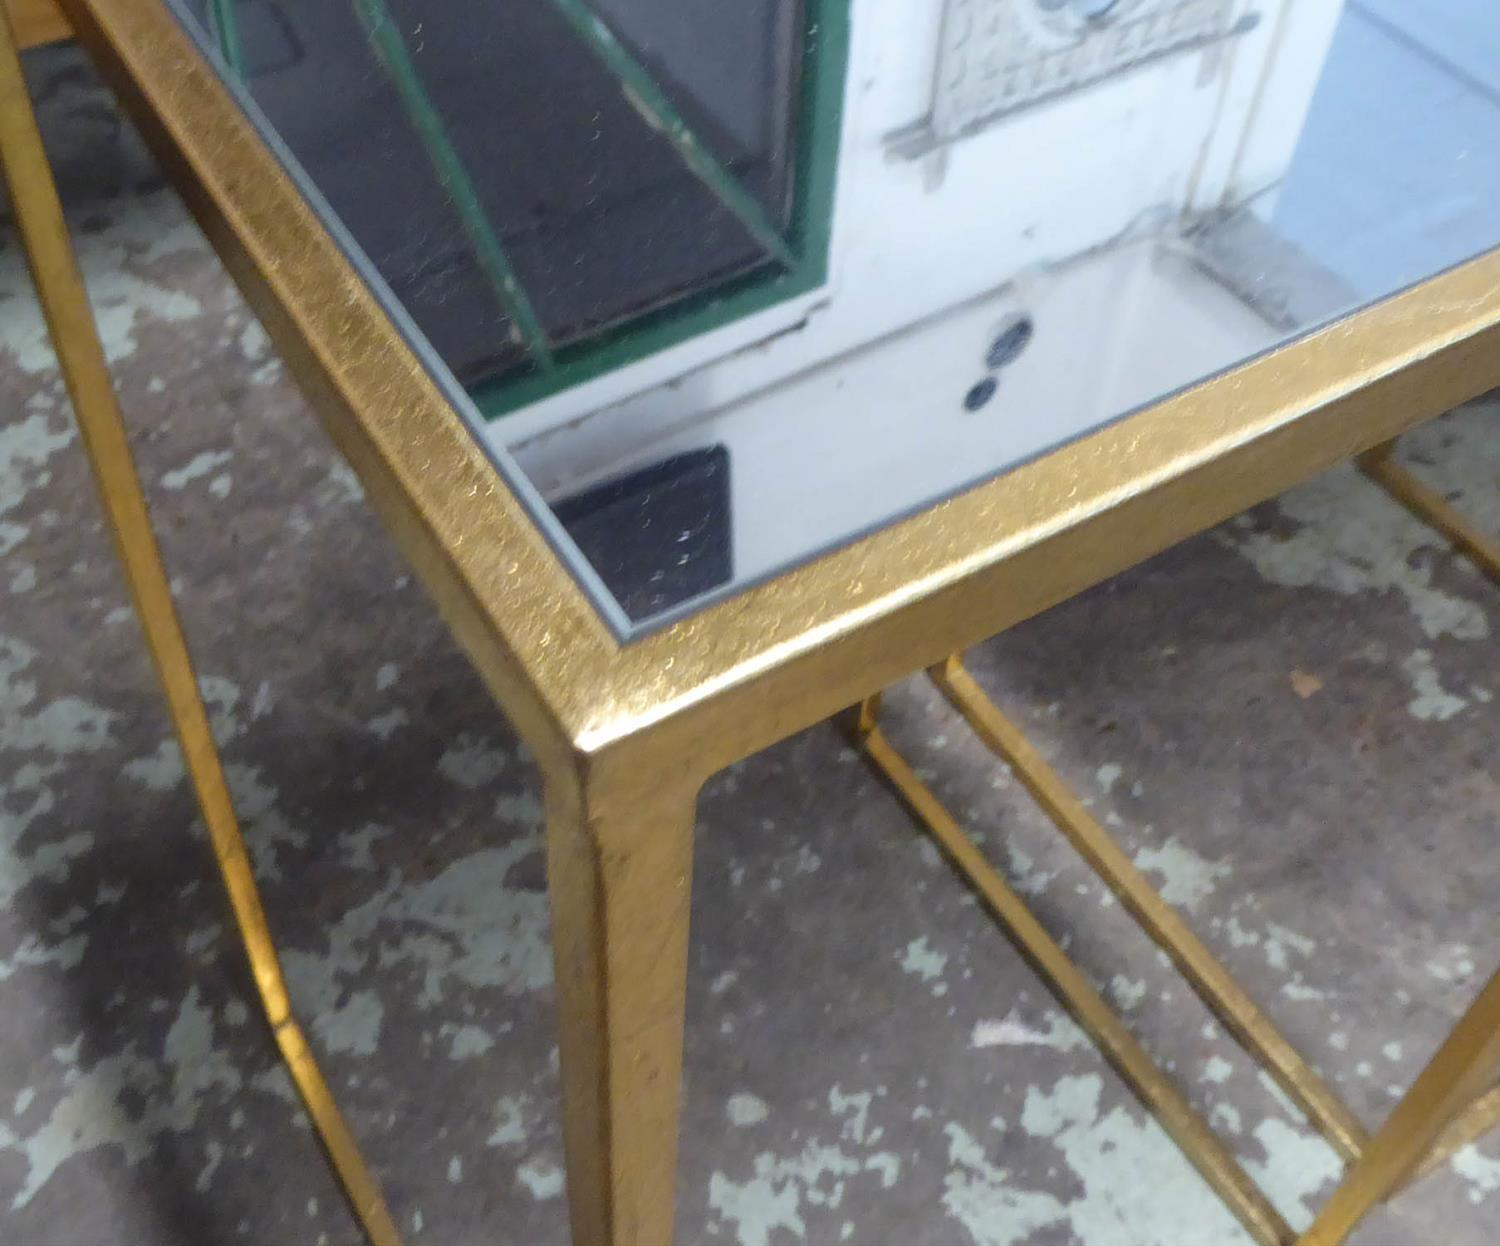 SIDE TABLES, a pair, 1960's French style, gilt metal and mirror, 35.5cm x 35.5cm x 66cm. (2) - Image 2 of 2